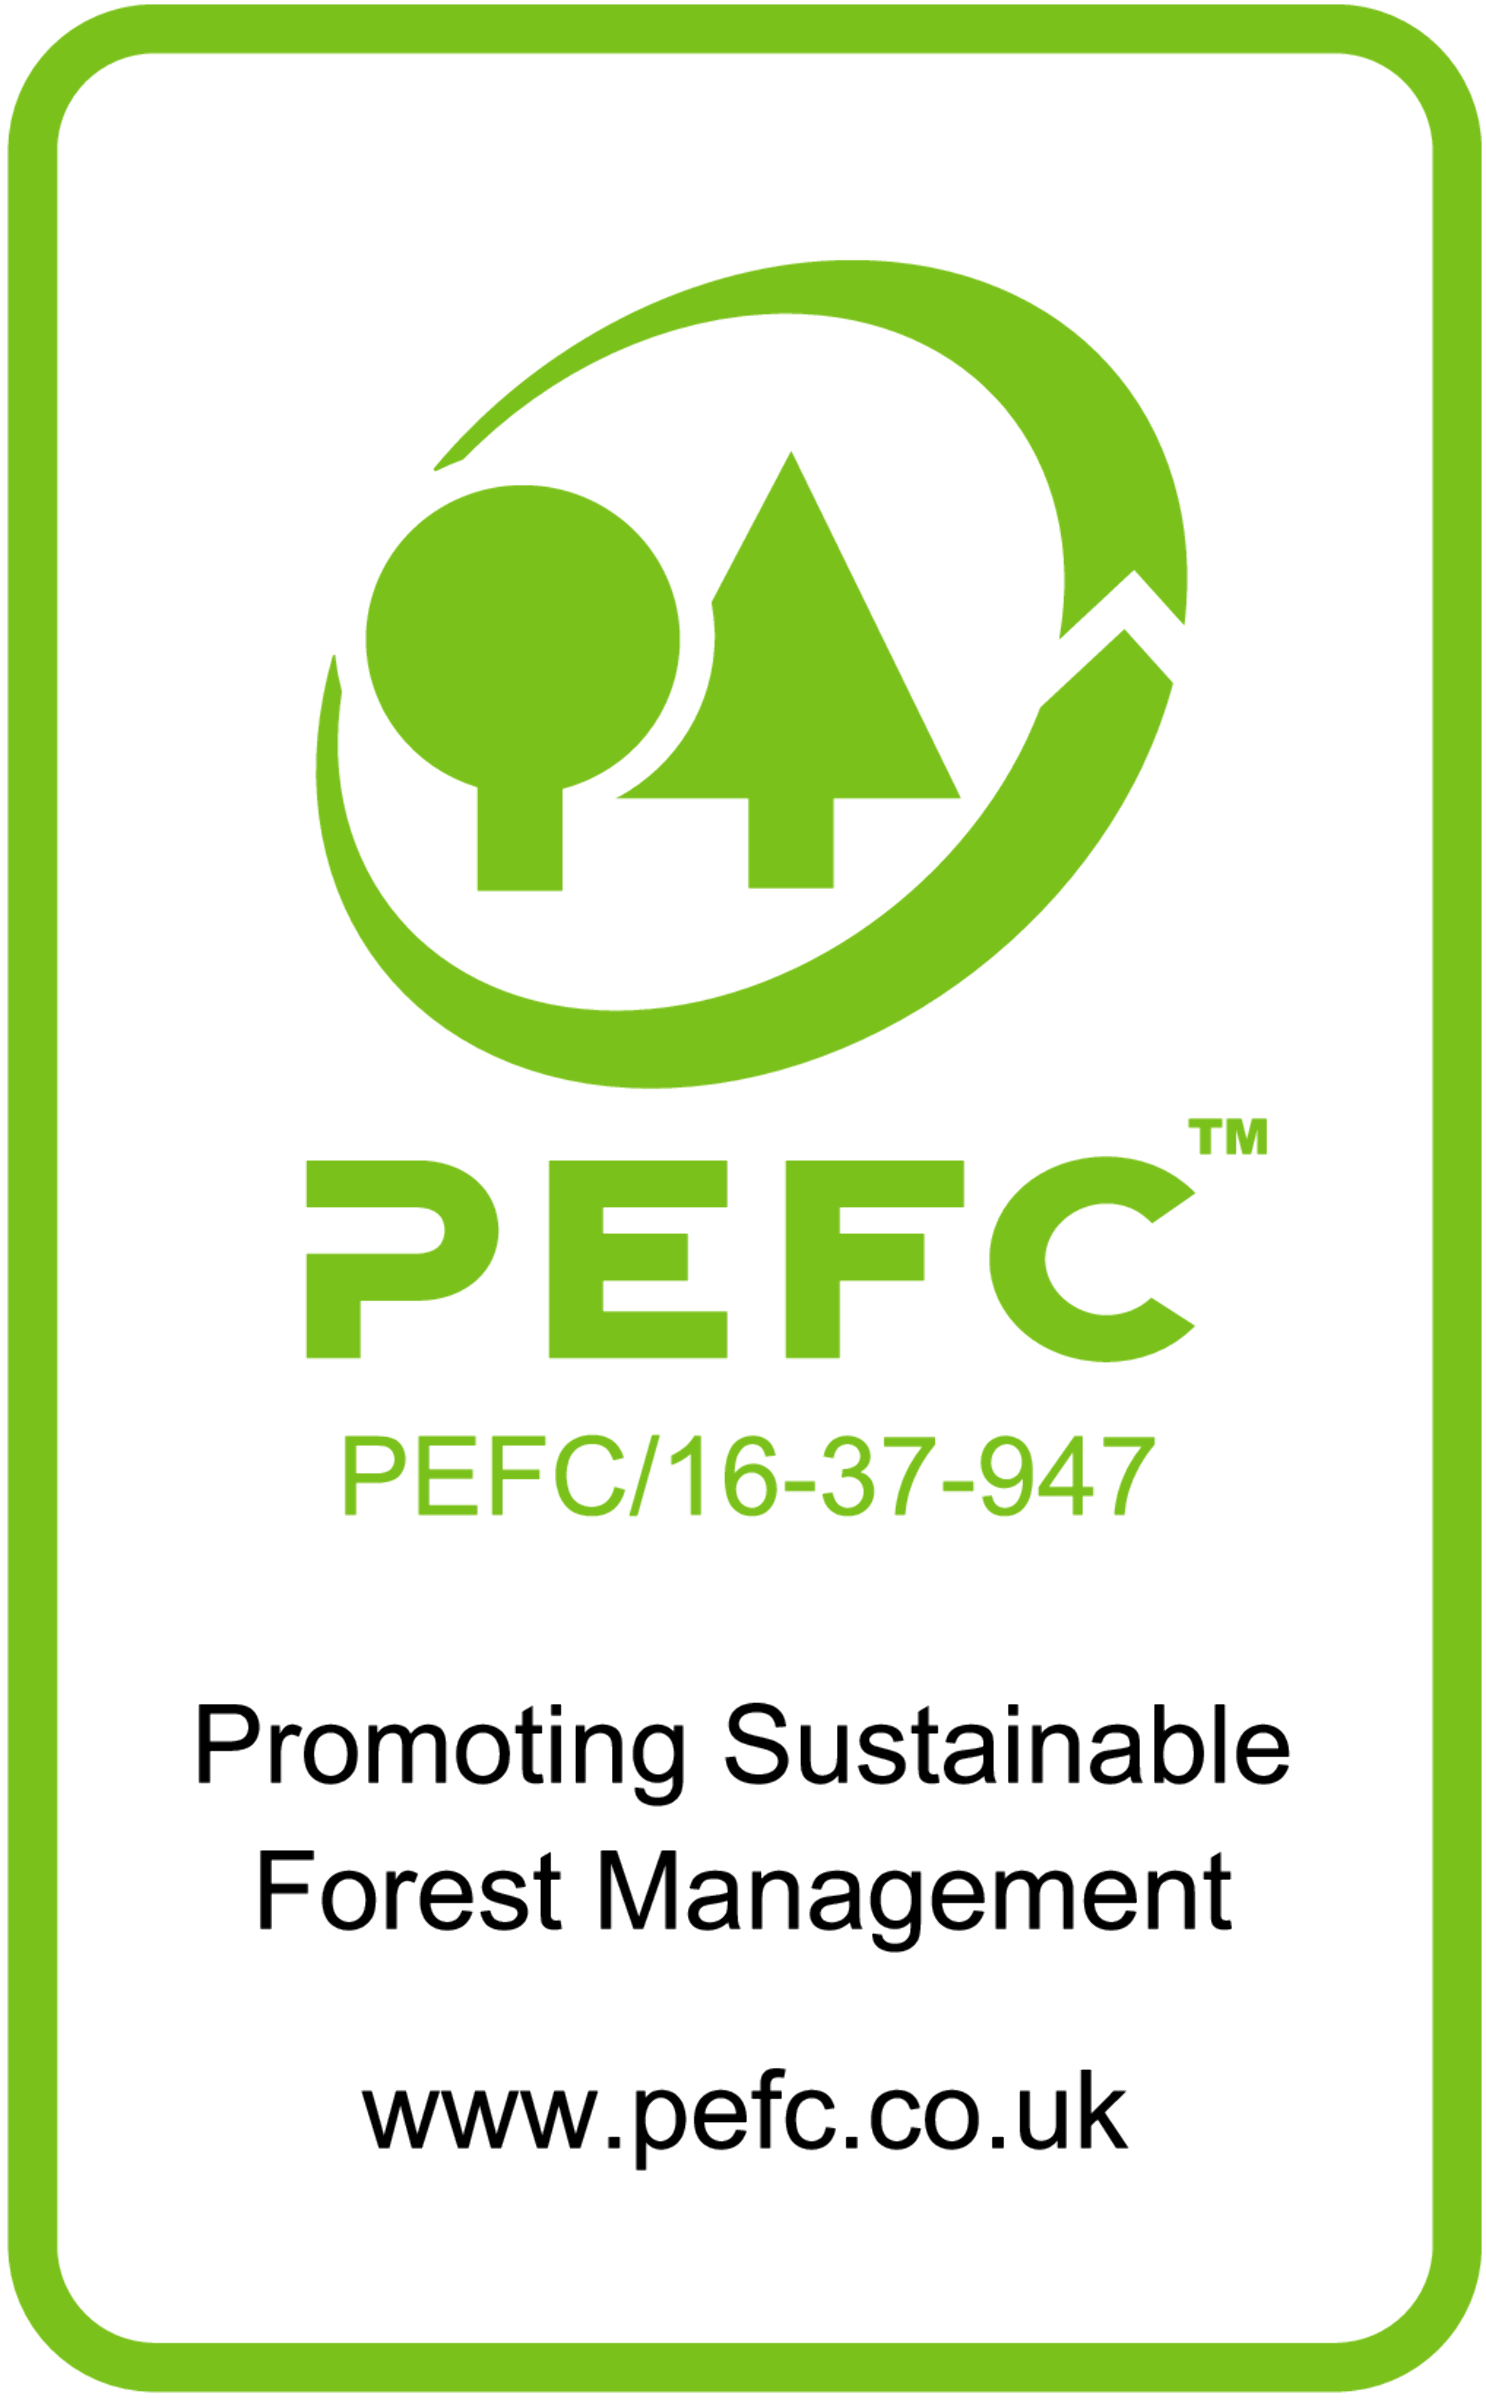 https://hardwoodsgroup.com/wp-content/uploads/2019/11/PEFC-Certified.png